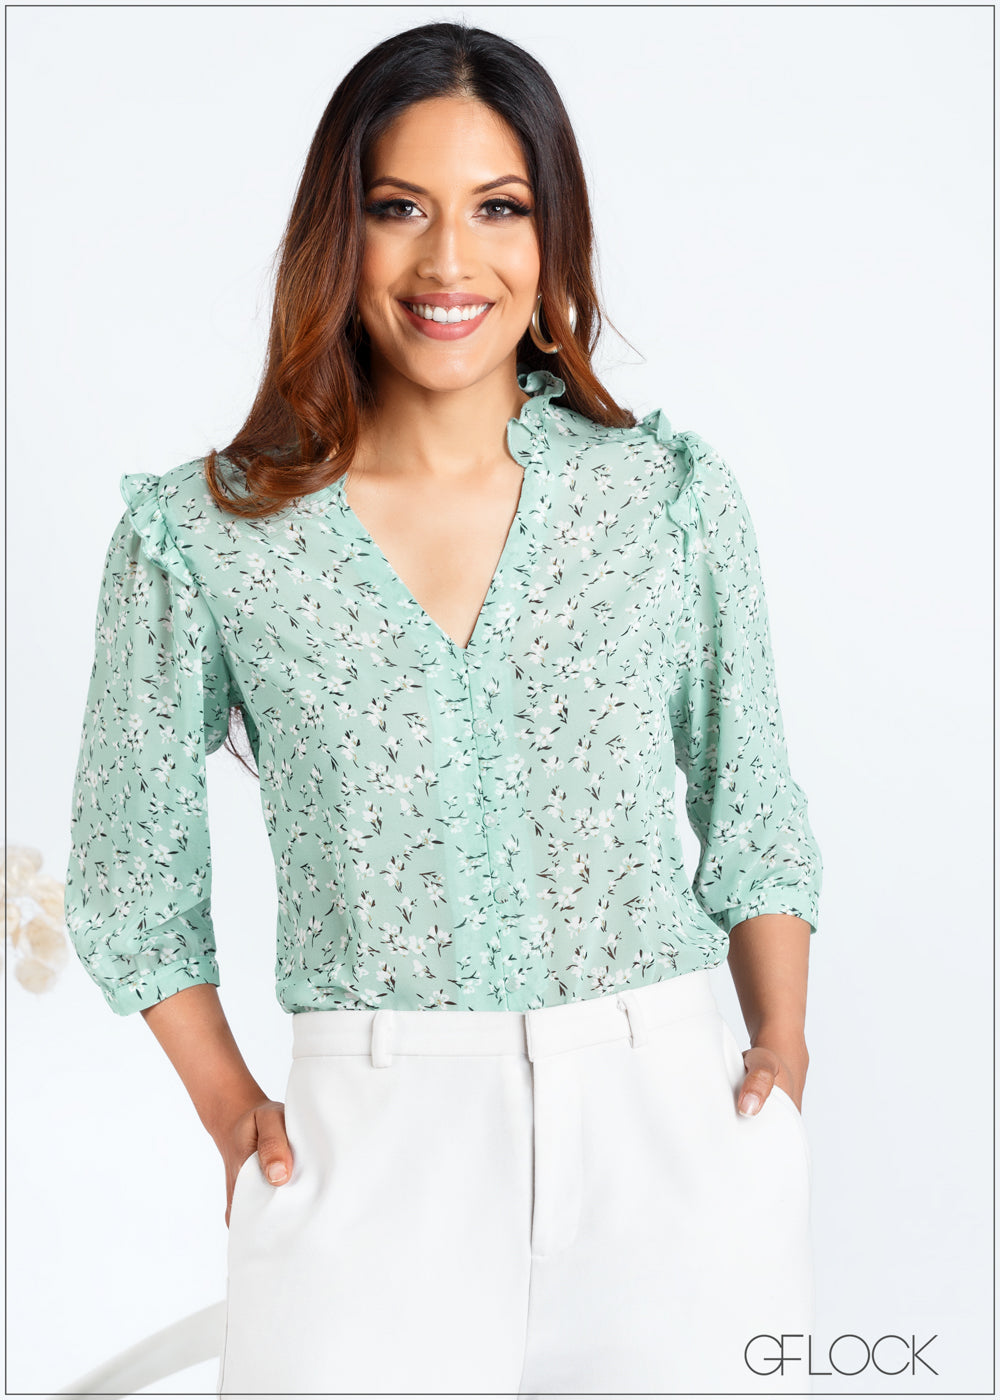 Printed Top with Ruffle Detail - 366